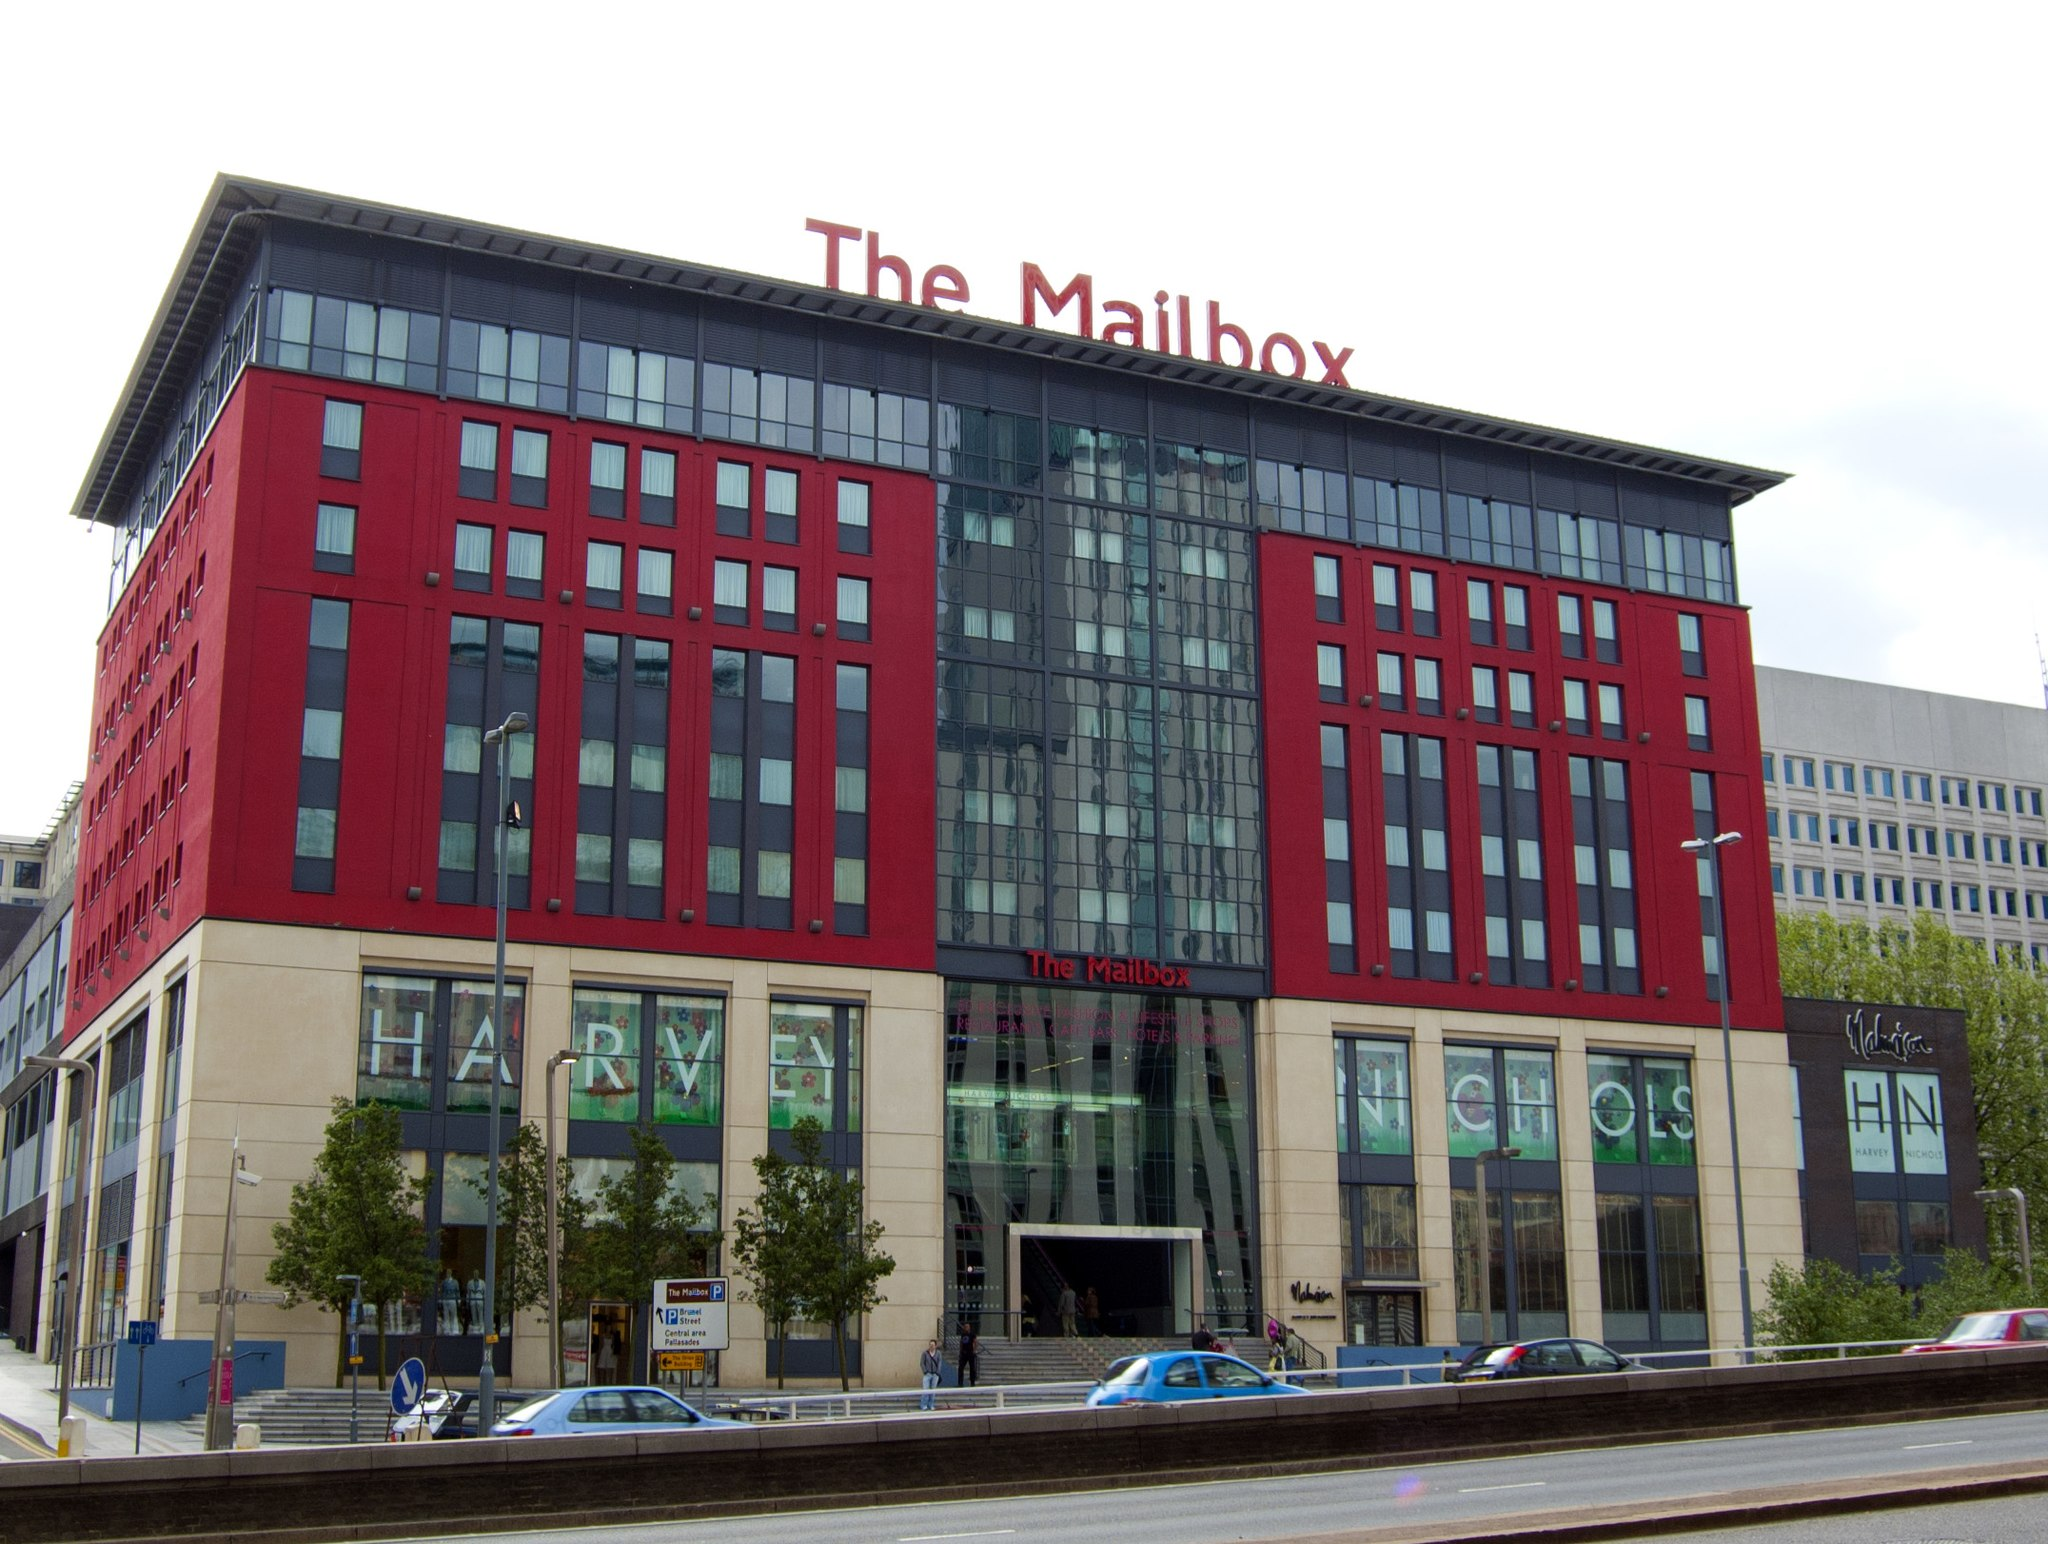 The Mailbox in Birmingham is already home to services including BBC WM, The Archers, some Asian Network programmes and BBC Midlands Today